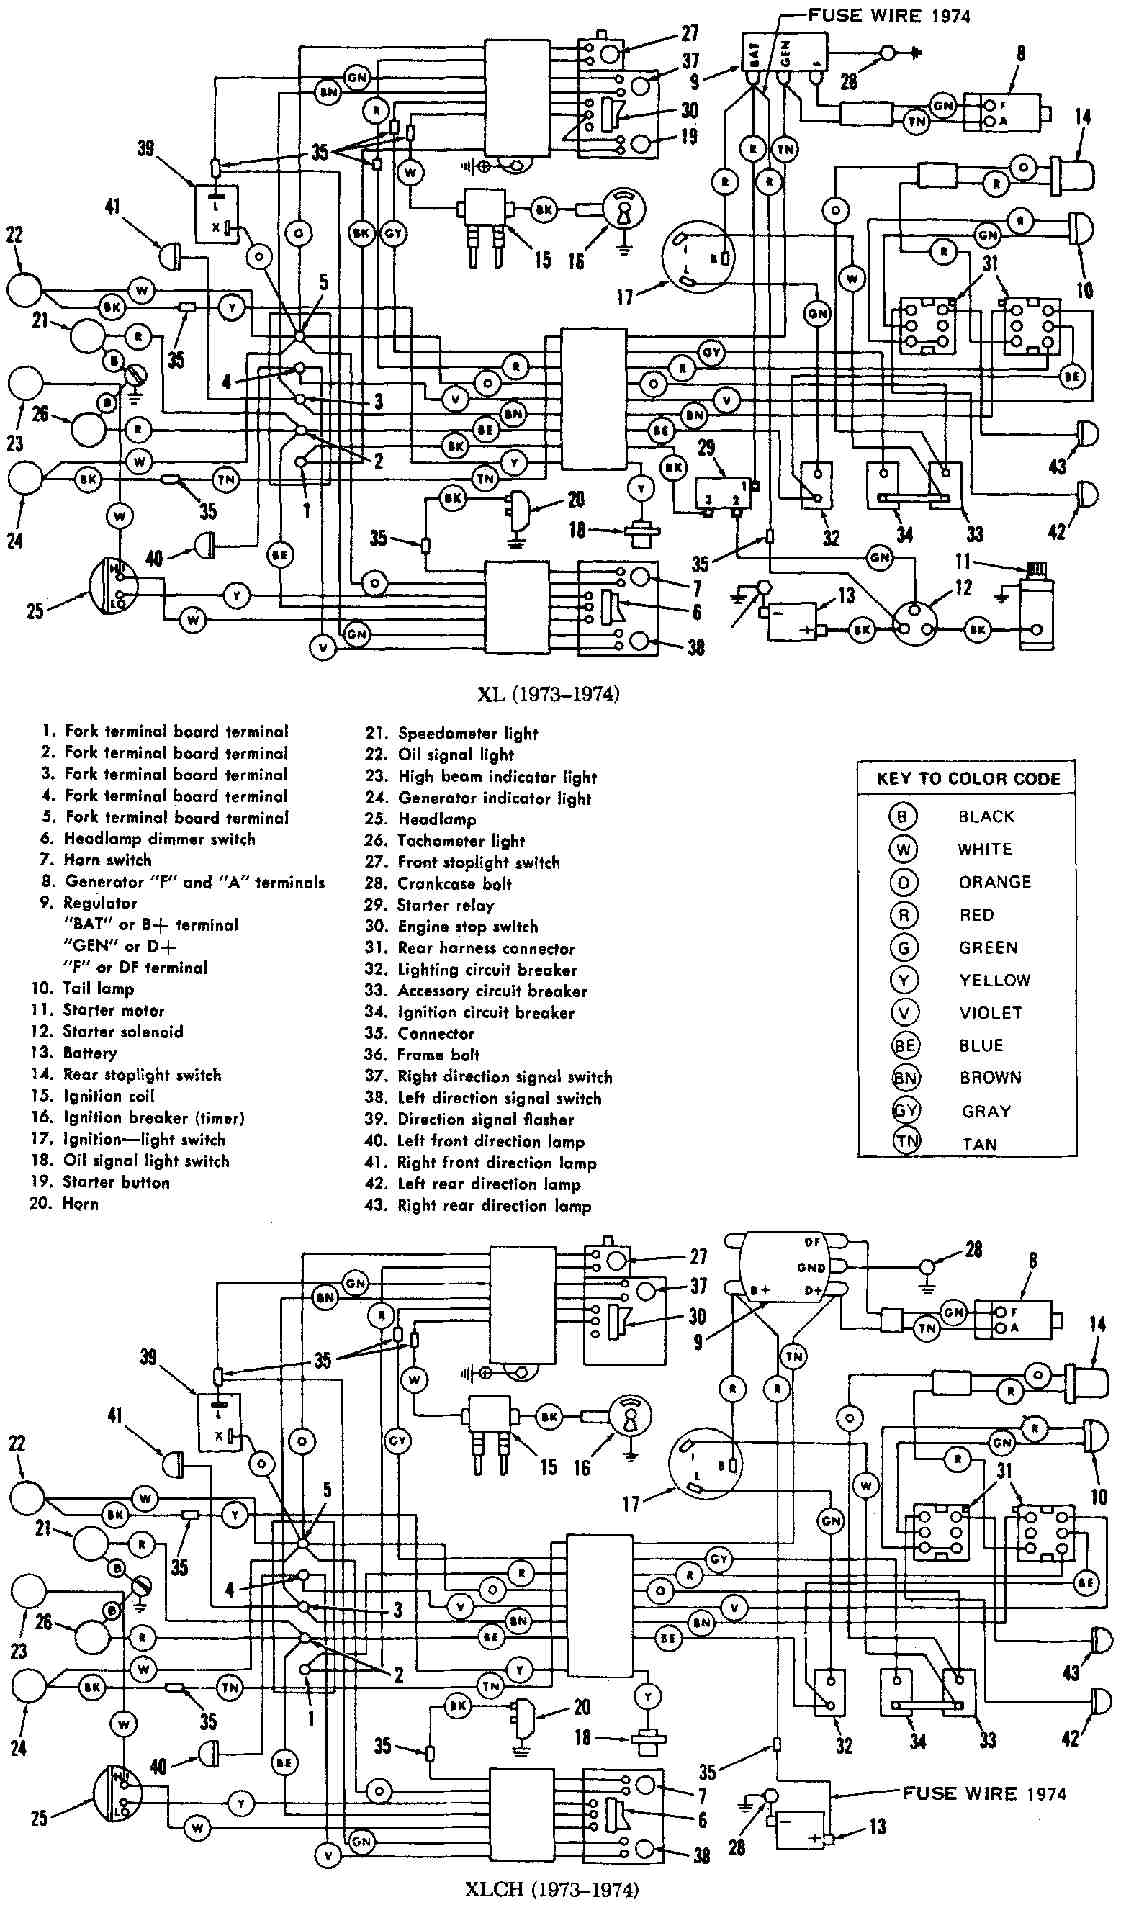 small resolution of 1973 harley golf cart wiring diagram wiring diagrams schema rh 10 verena hoegerl de 1992 harley